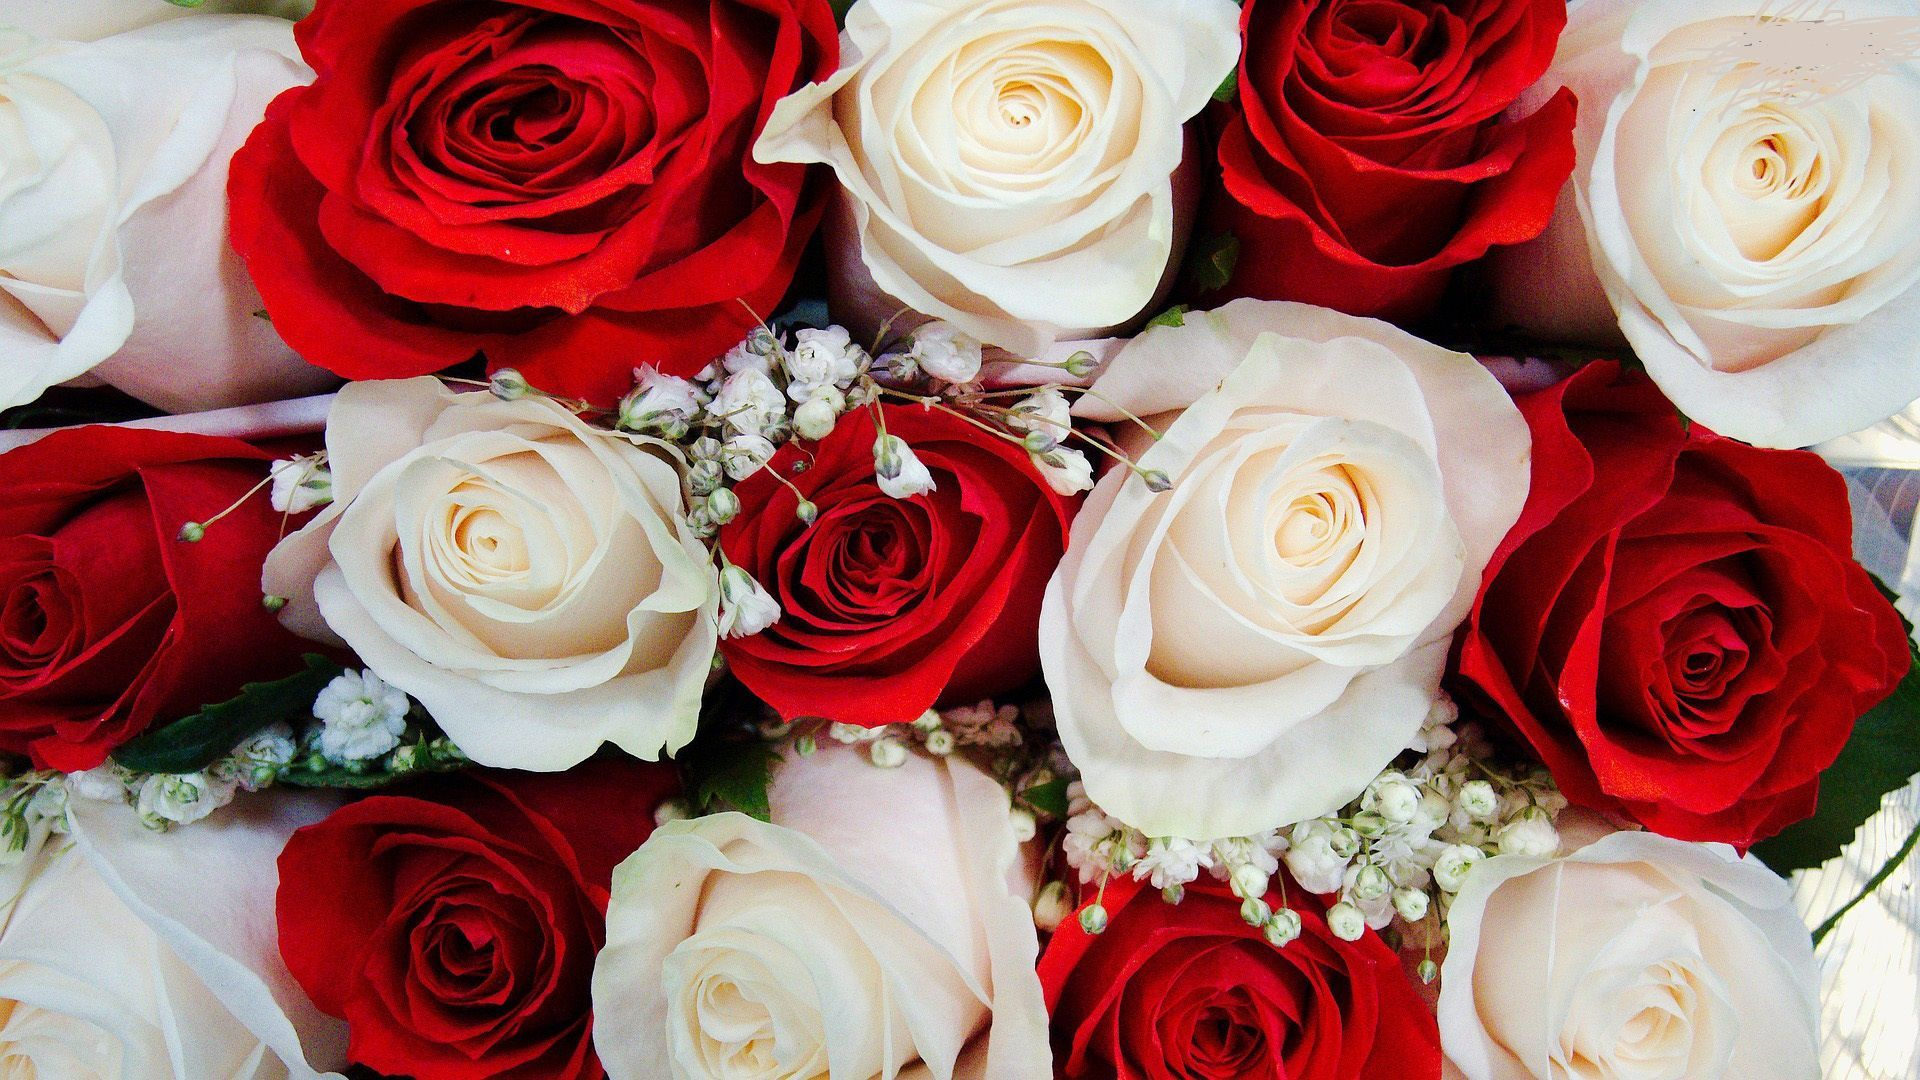 Red and White Roses Wallpapers on WallpaperDog